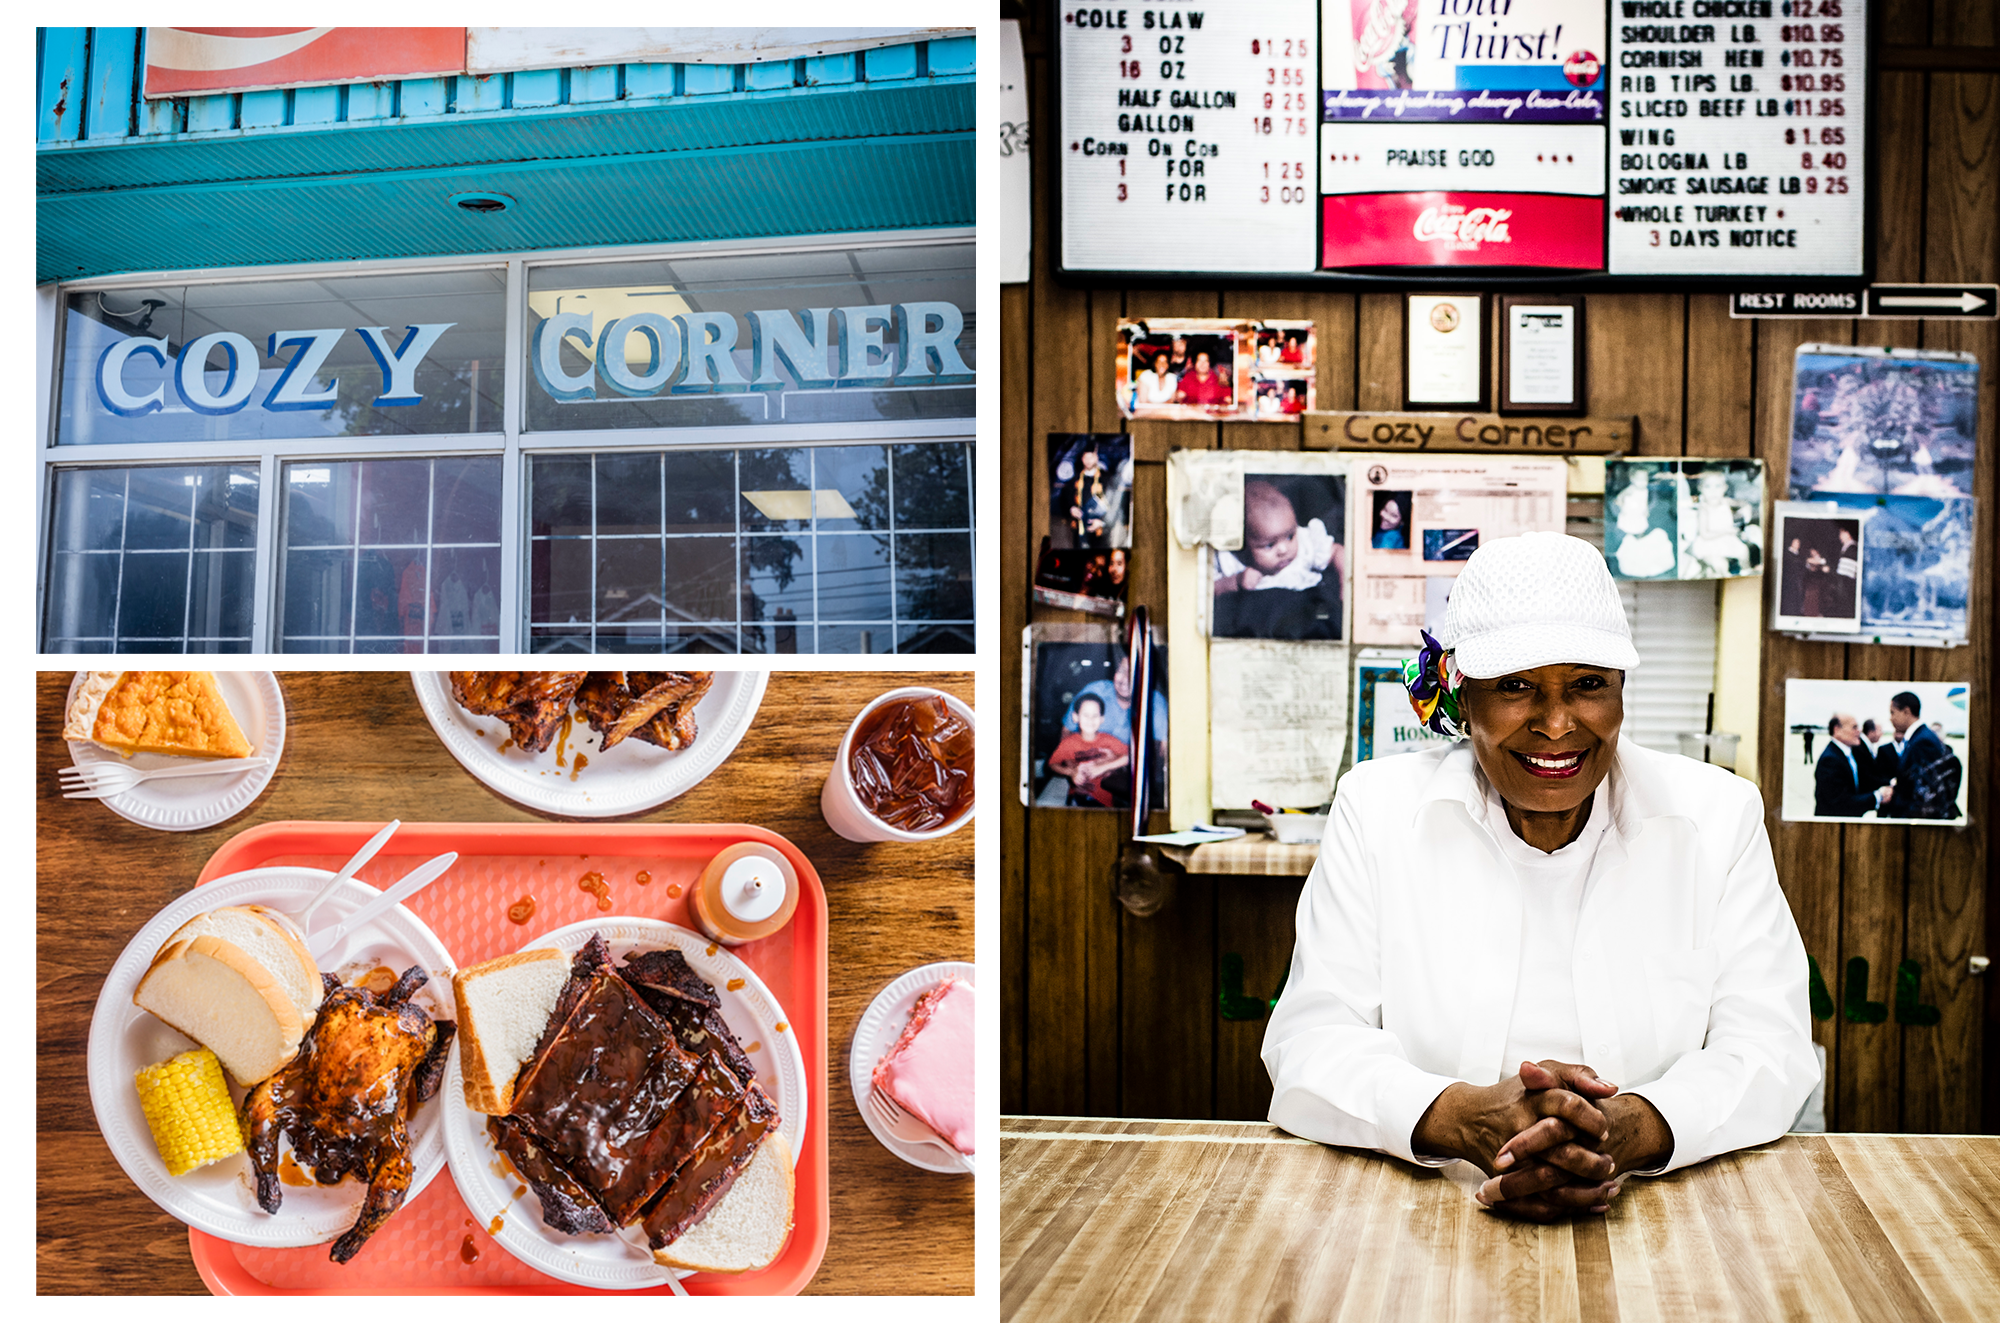 composite image of Cozy Corner cafe, an array of BBQ chicken, ribs, corn, tea, and desserts, and Desiree Robinson